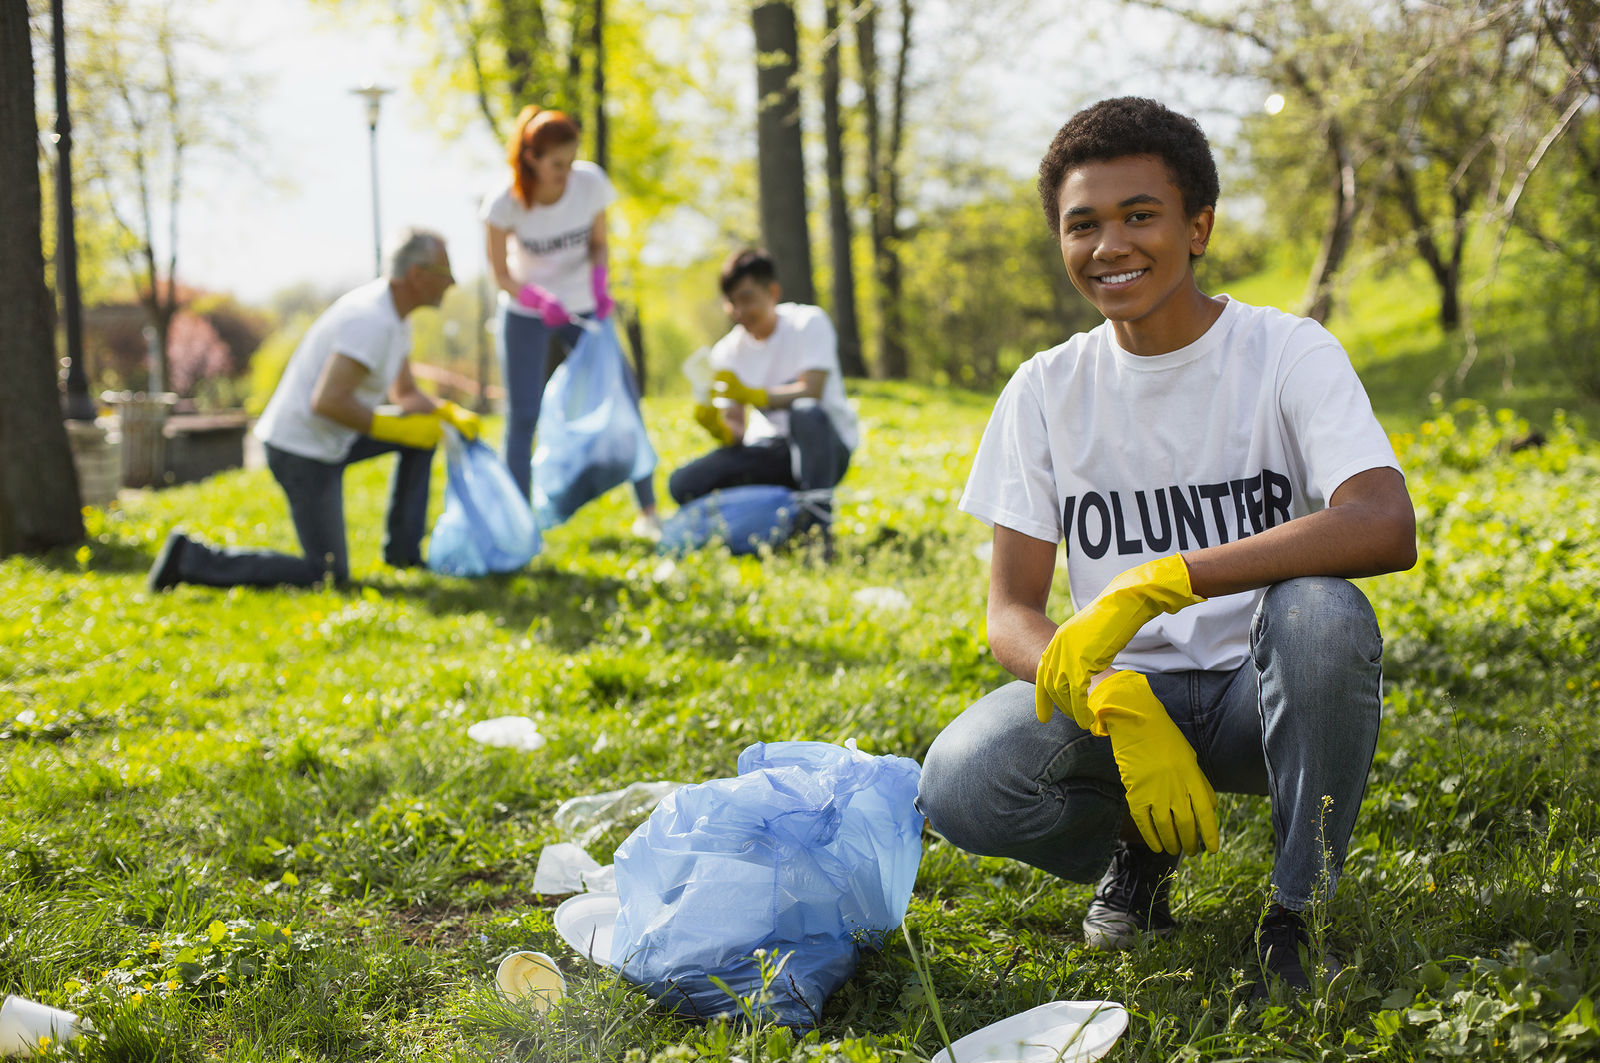 Teen-Friendly Volunteer Projects for the Summer